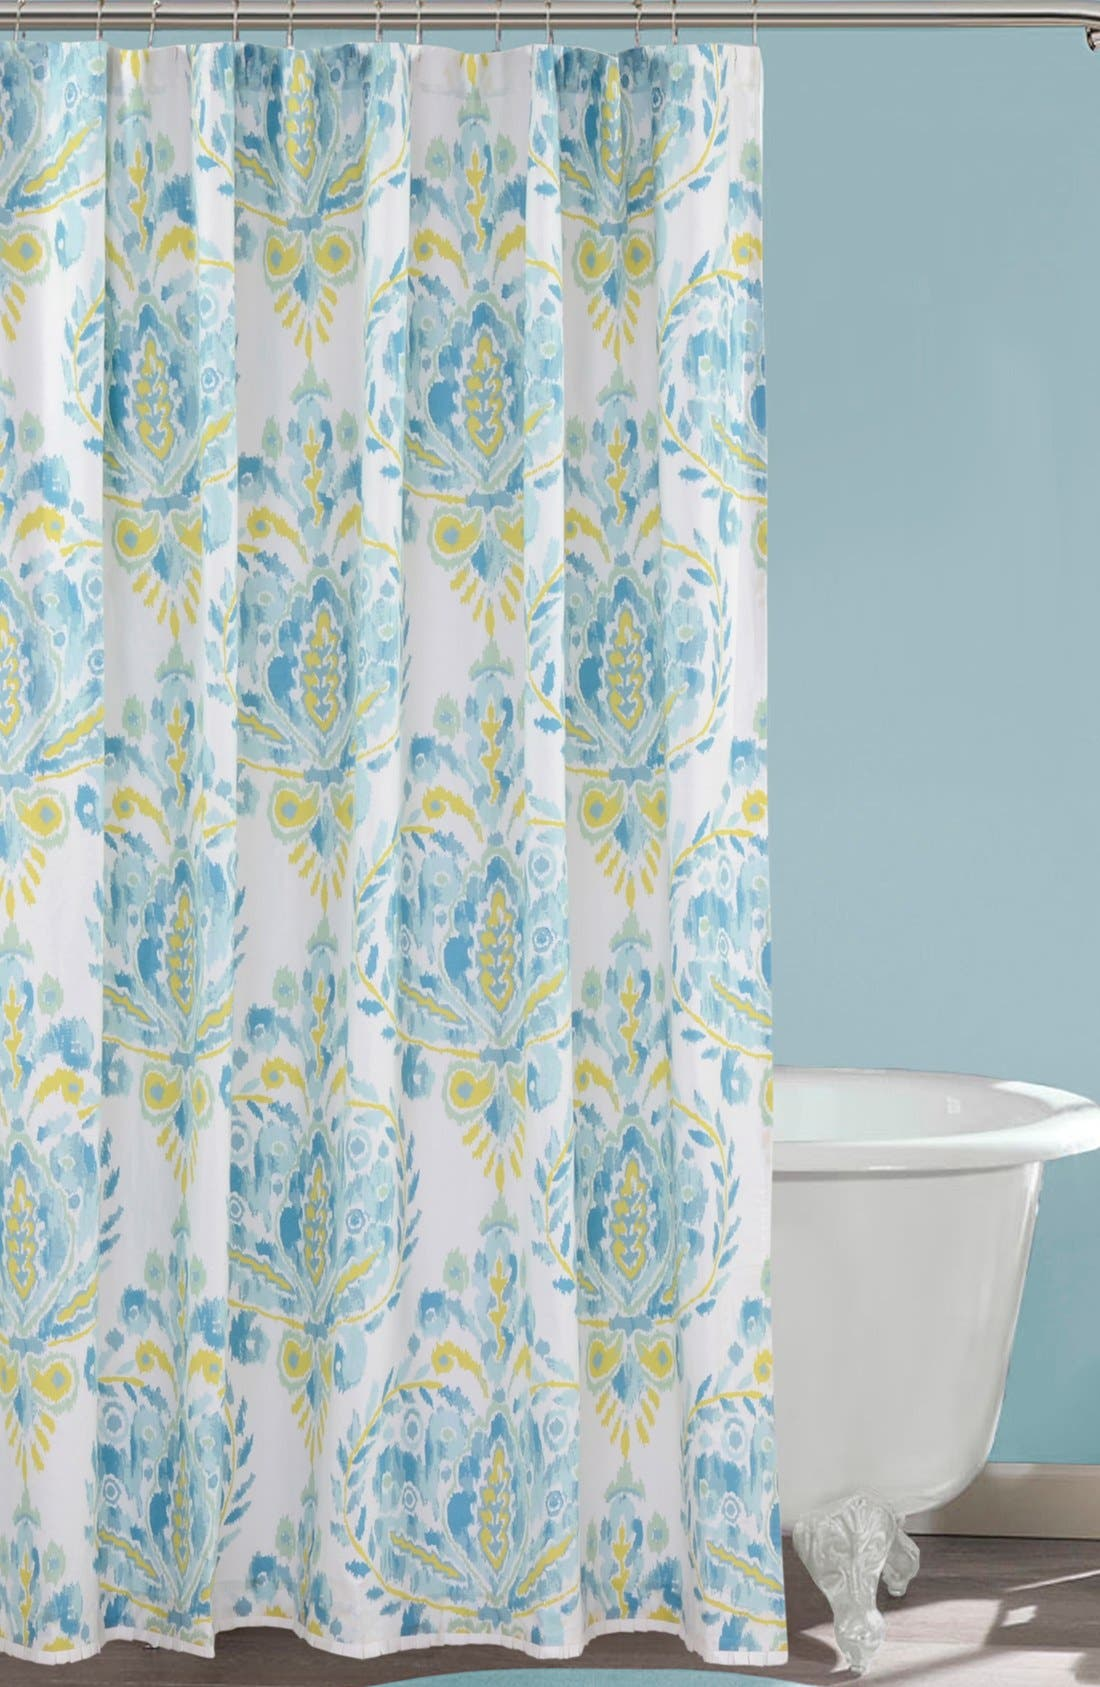 Alternate Image 1 Selected - Dena Home 'Breeze' Shower Curtain